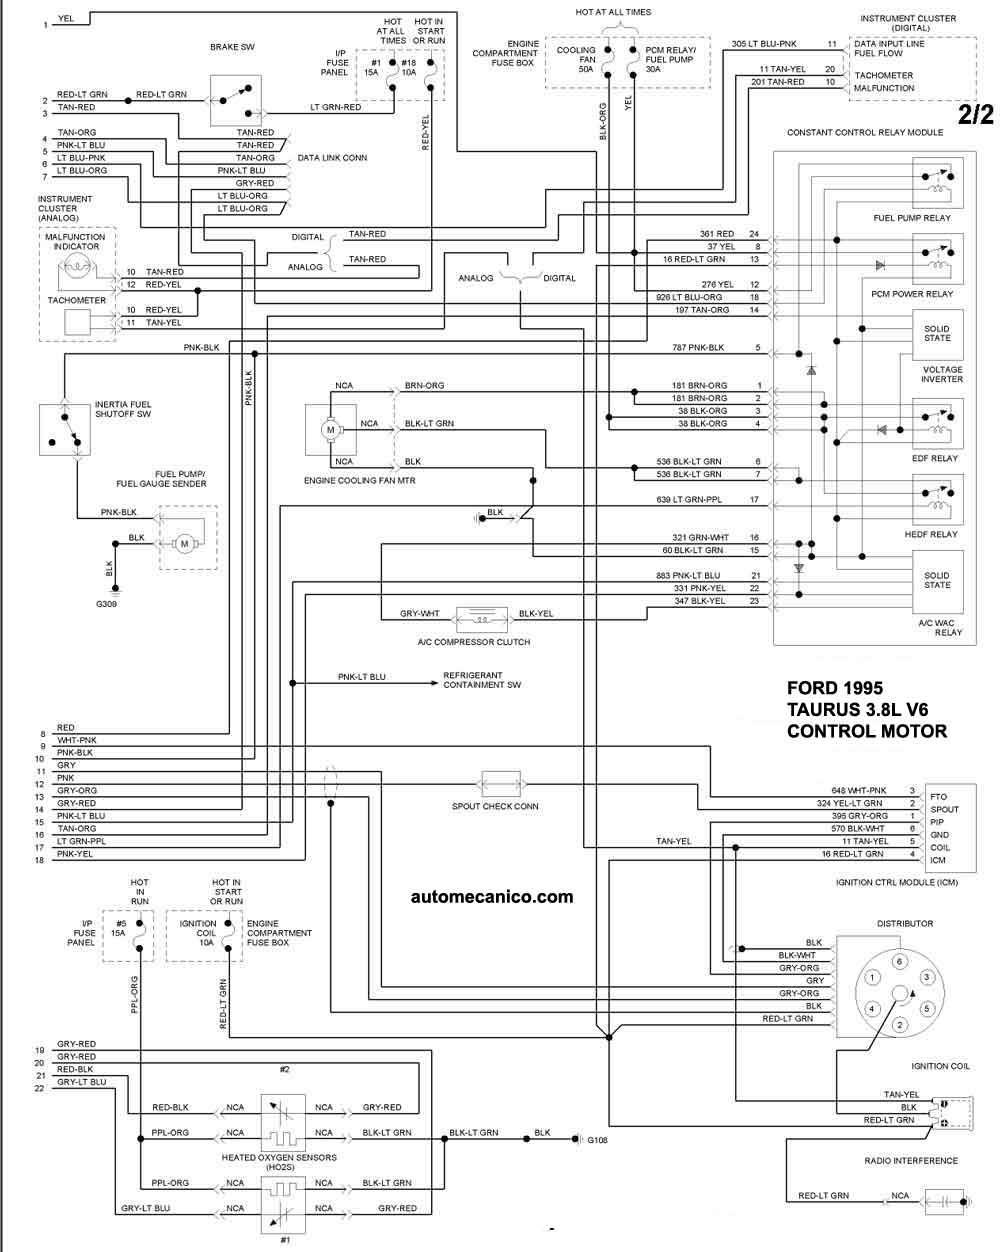 As 8339 Control System Vacuum Cj2 Selected Part 03039715 Link Air Free Diagram